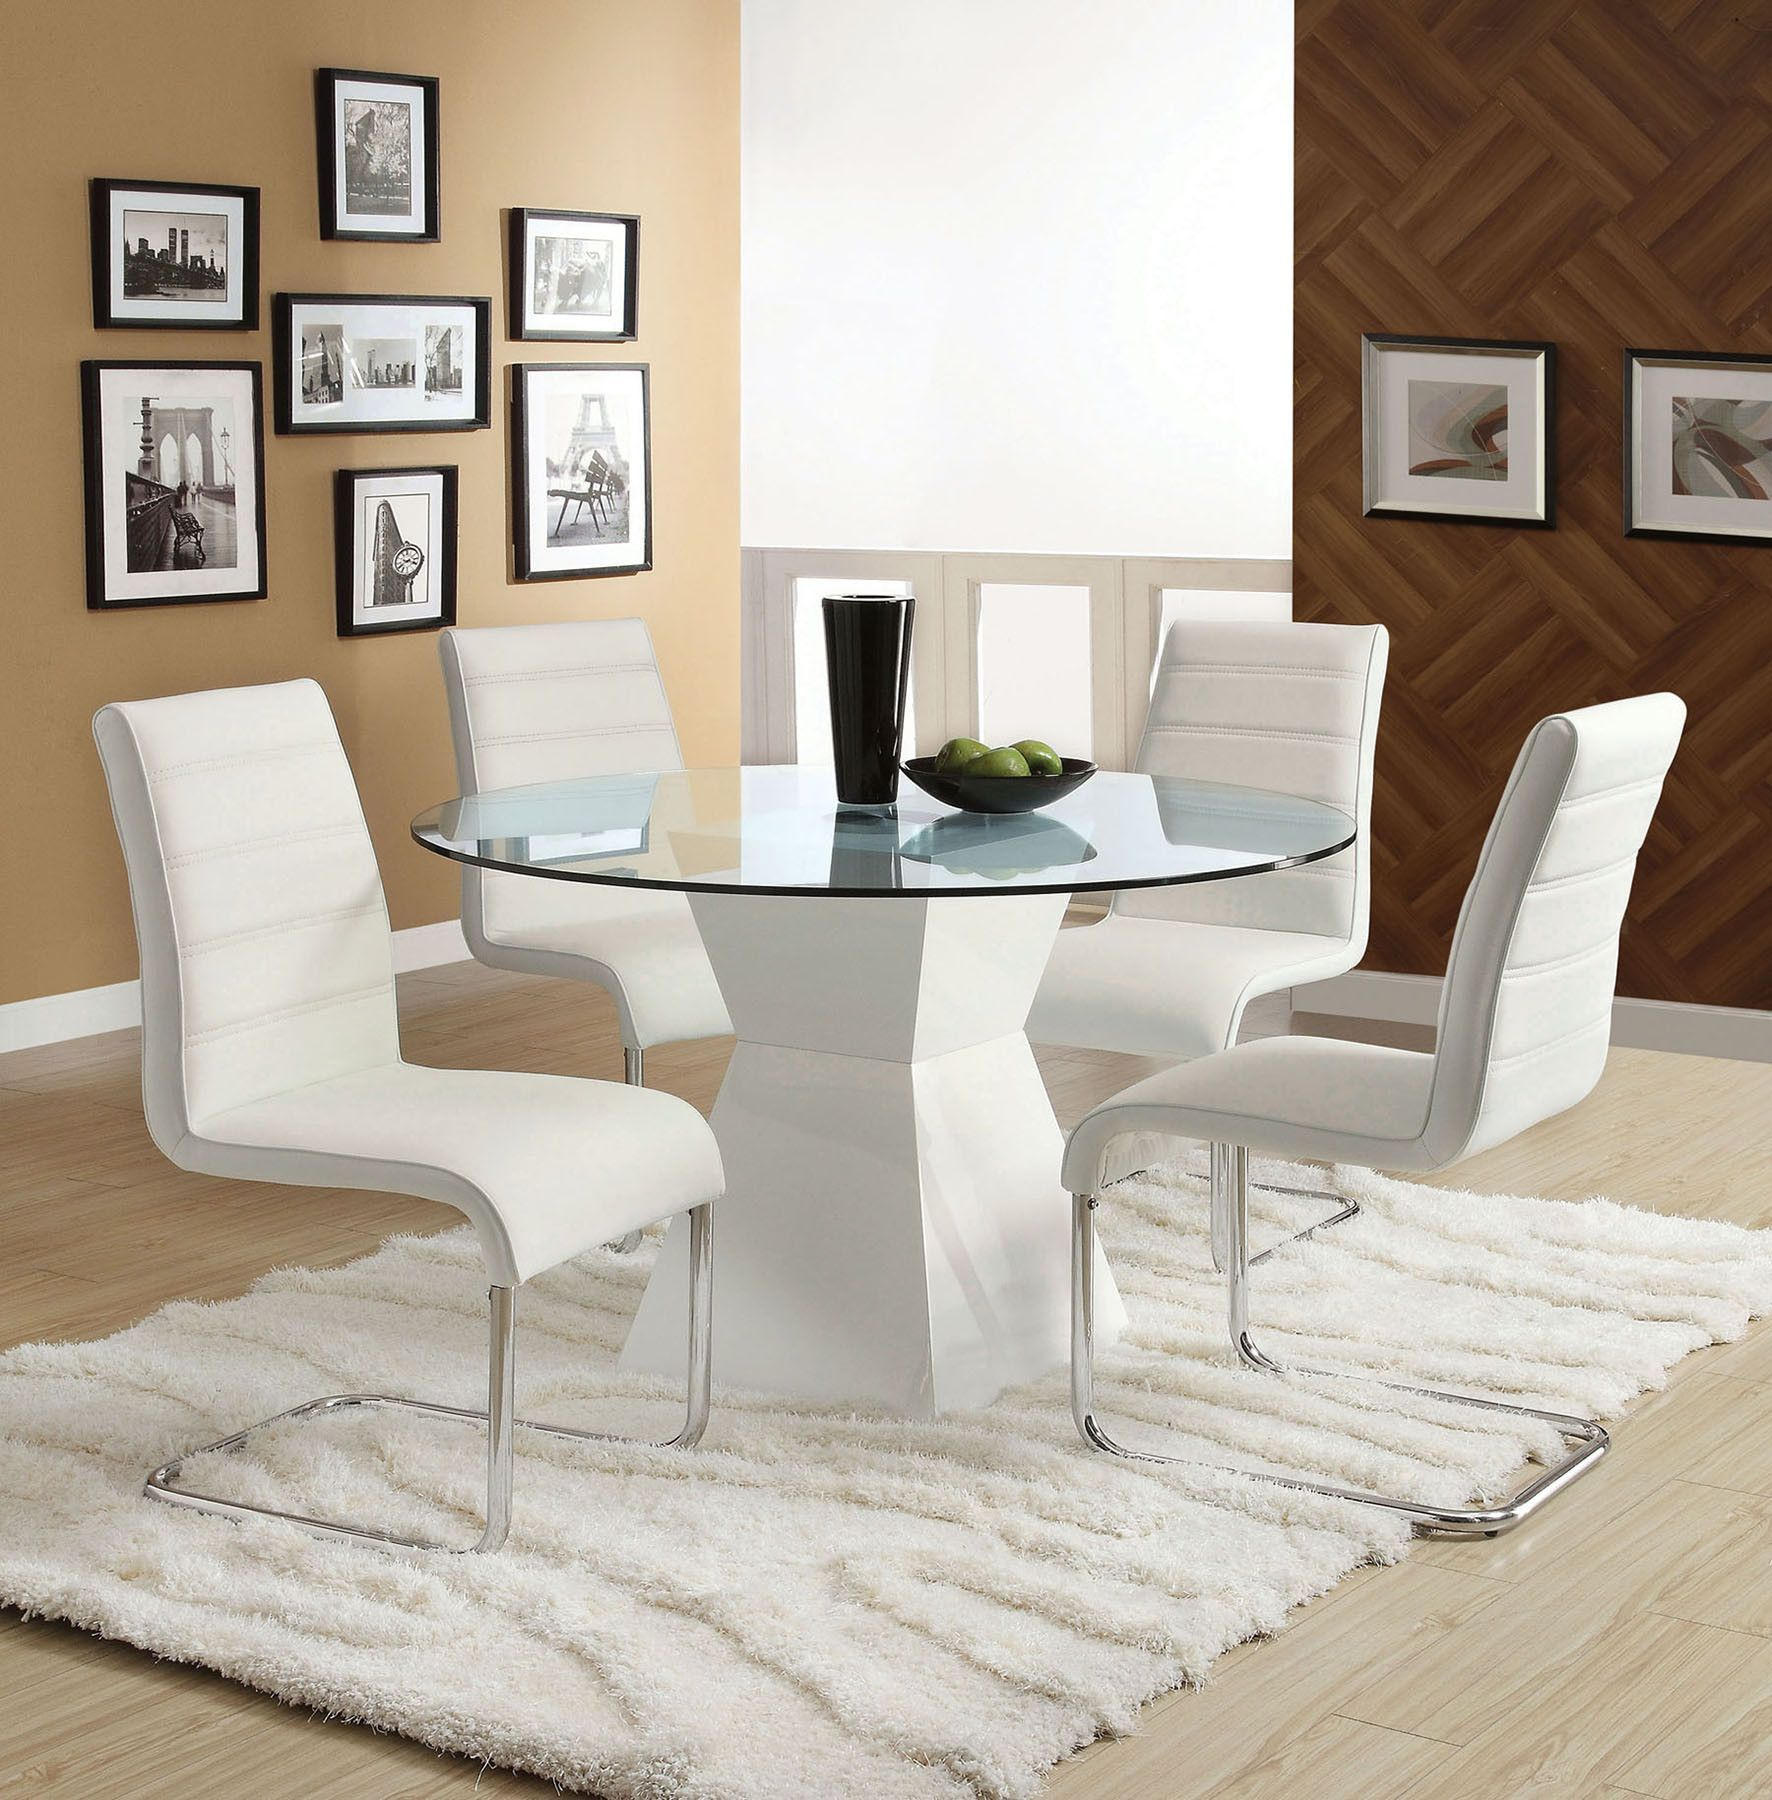 Cm8371t Mauna White Glass Round Dining Table 4 Chairs Glass Top Dining Table Round Dining Room Glass Round Dining Table